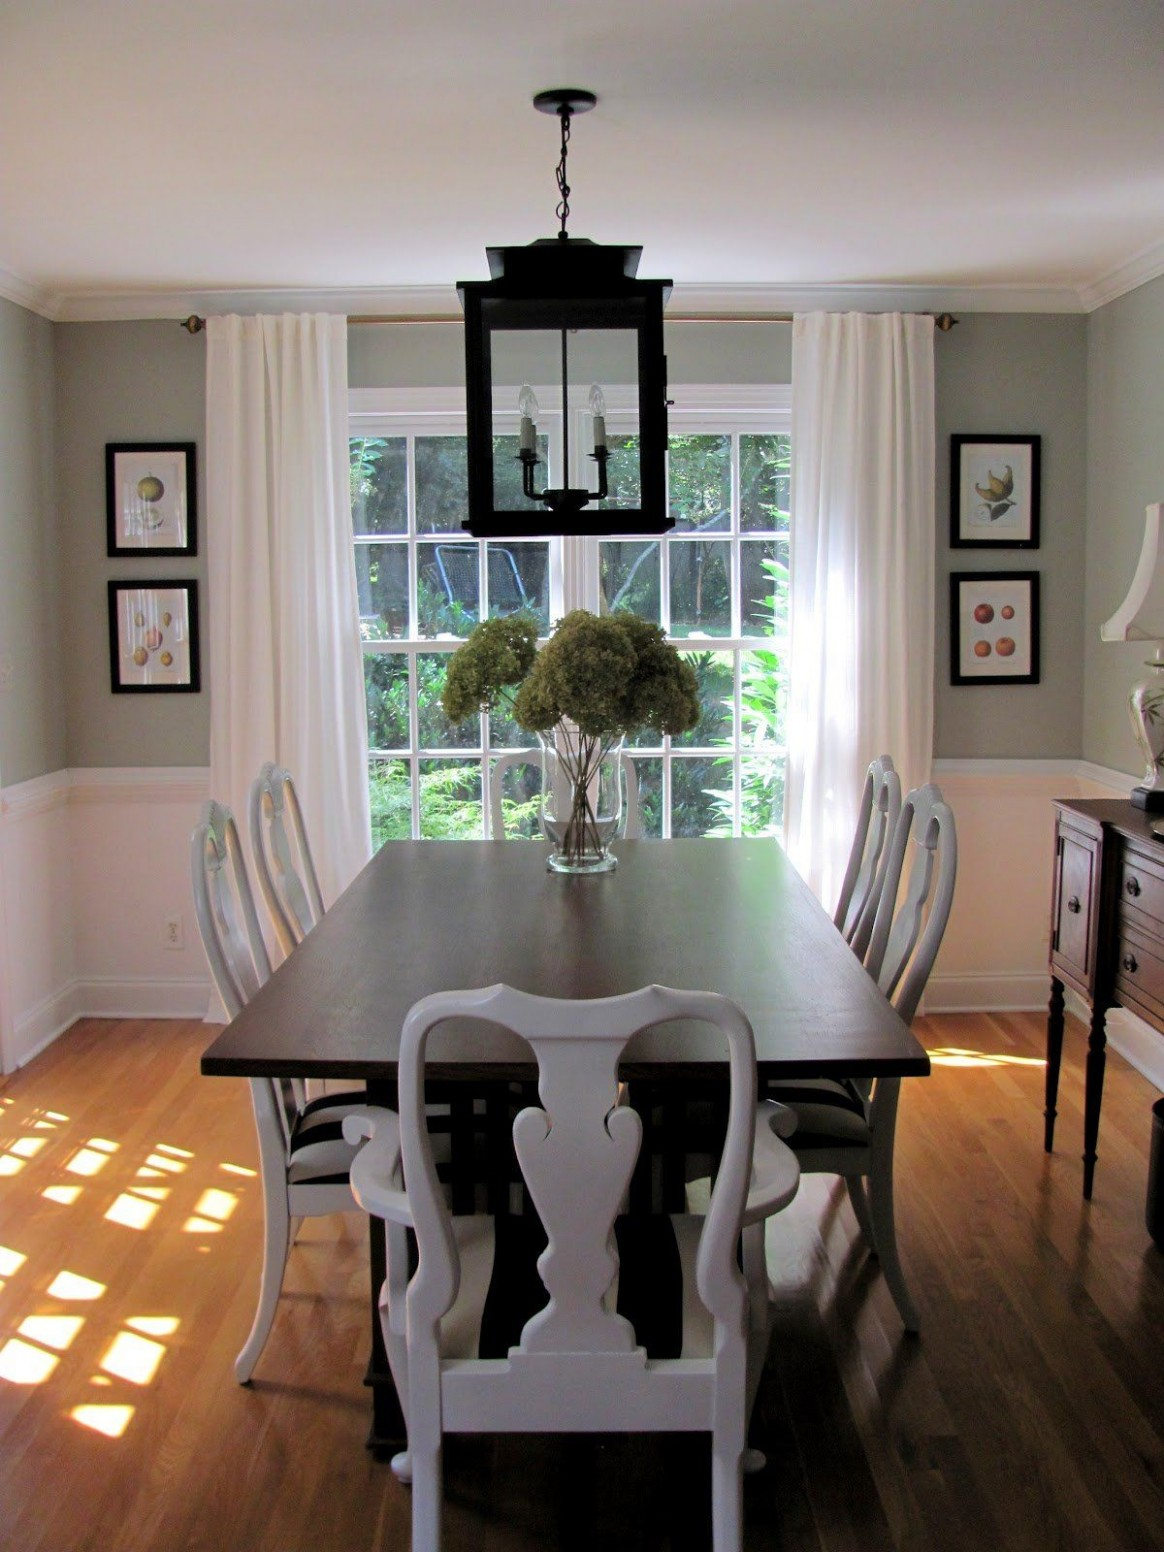 This is the ultimate dream house according to Pinterest users  - Window Ideas For Dining Room